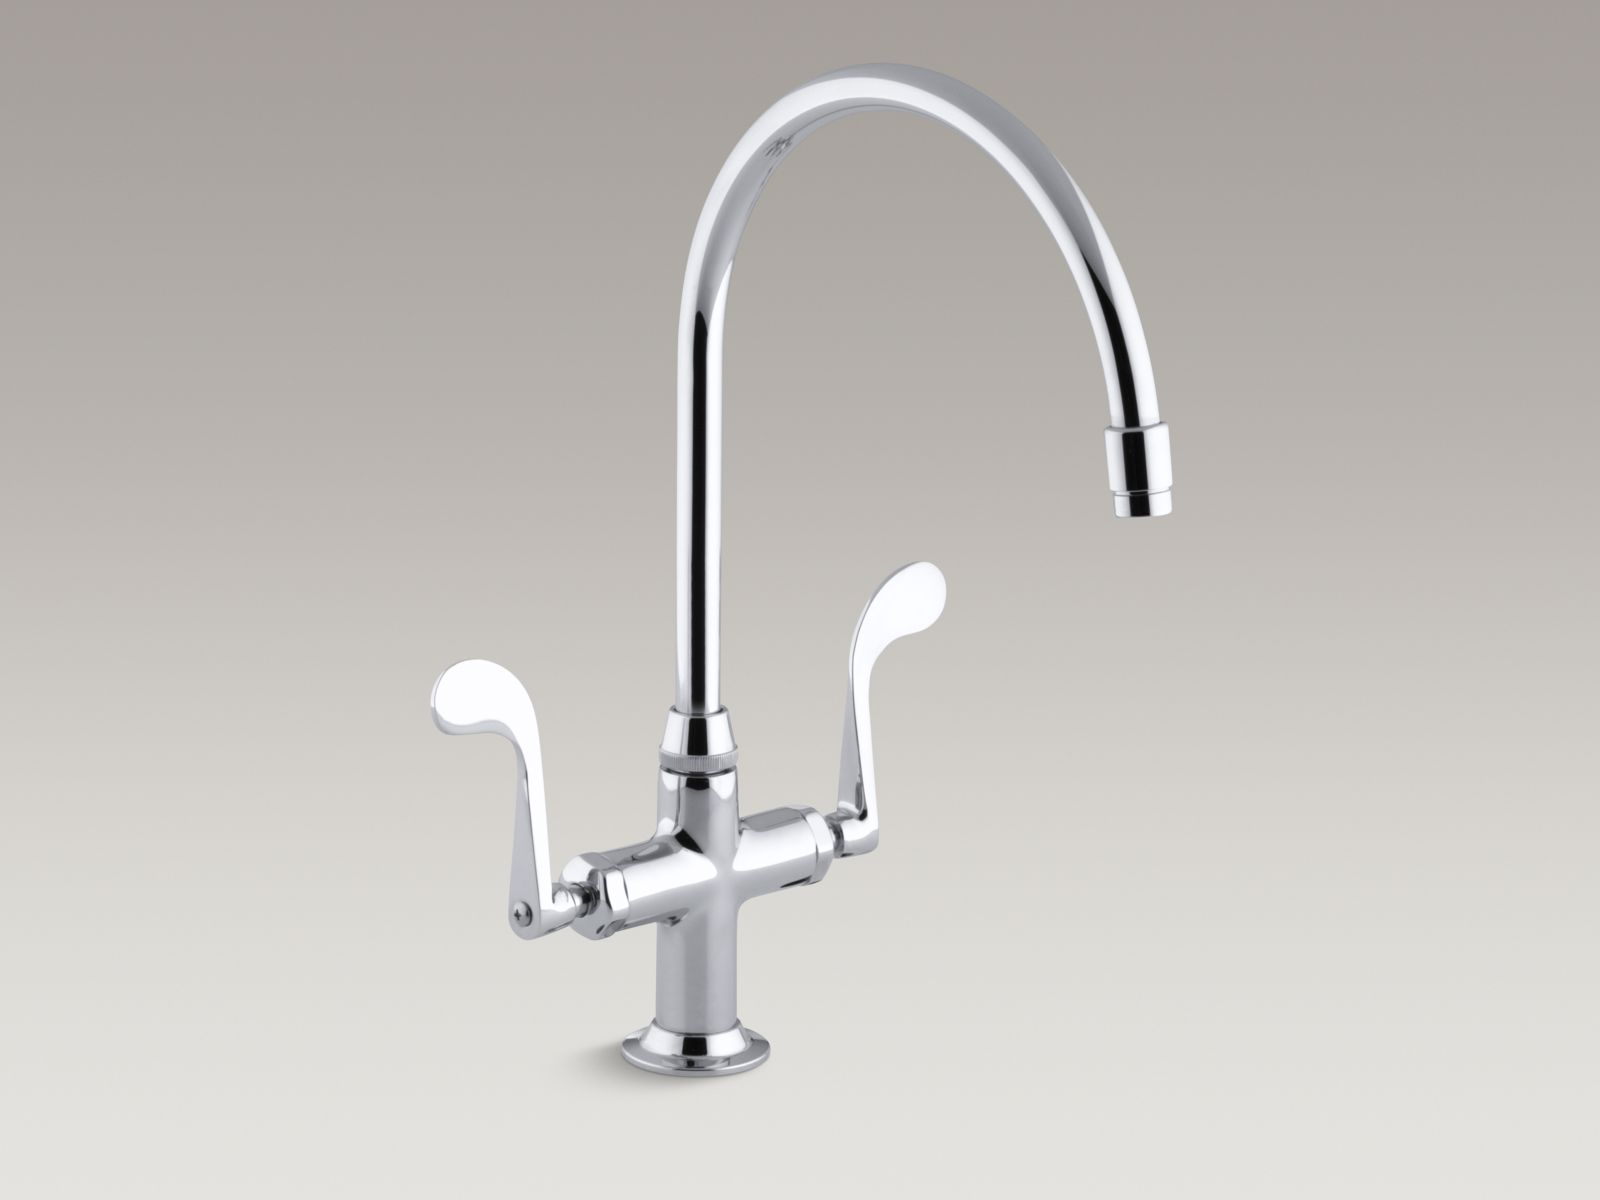 Kohler K-8762-CP Essex Sink Faucet Polished Chrome